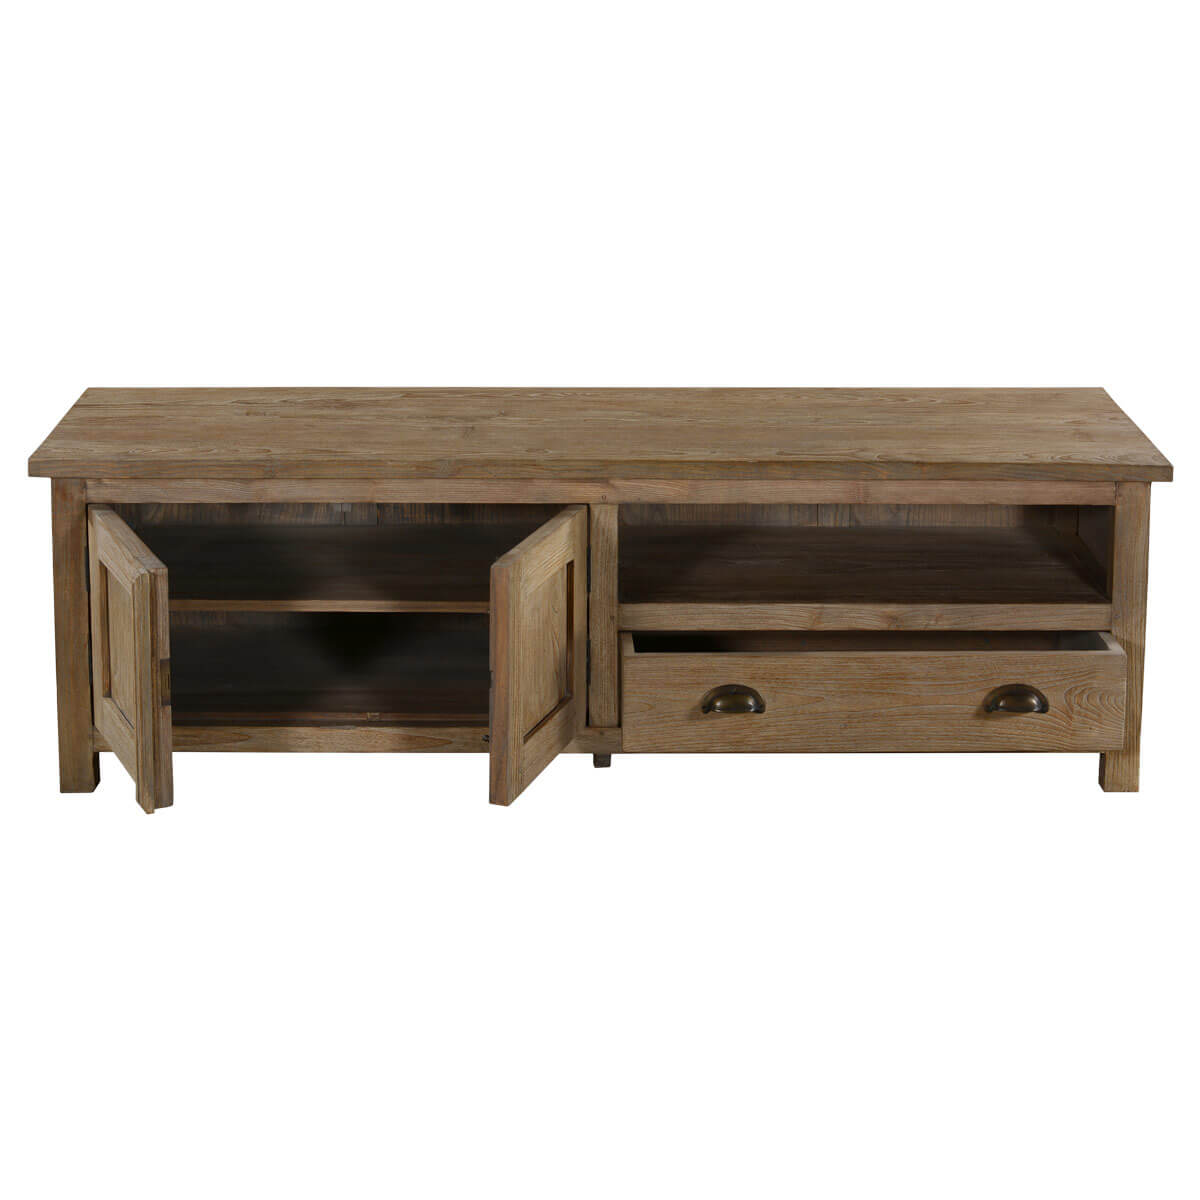 Sleek Handcrafted Teak Wood 1 Drawer TV Media Console